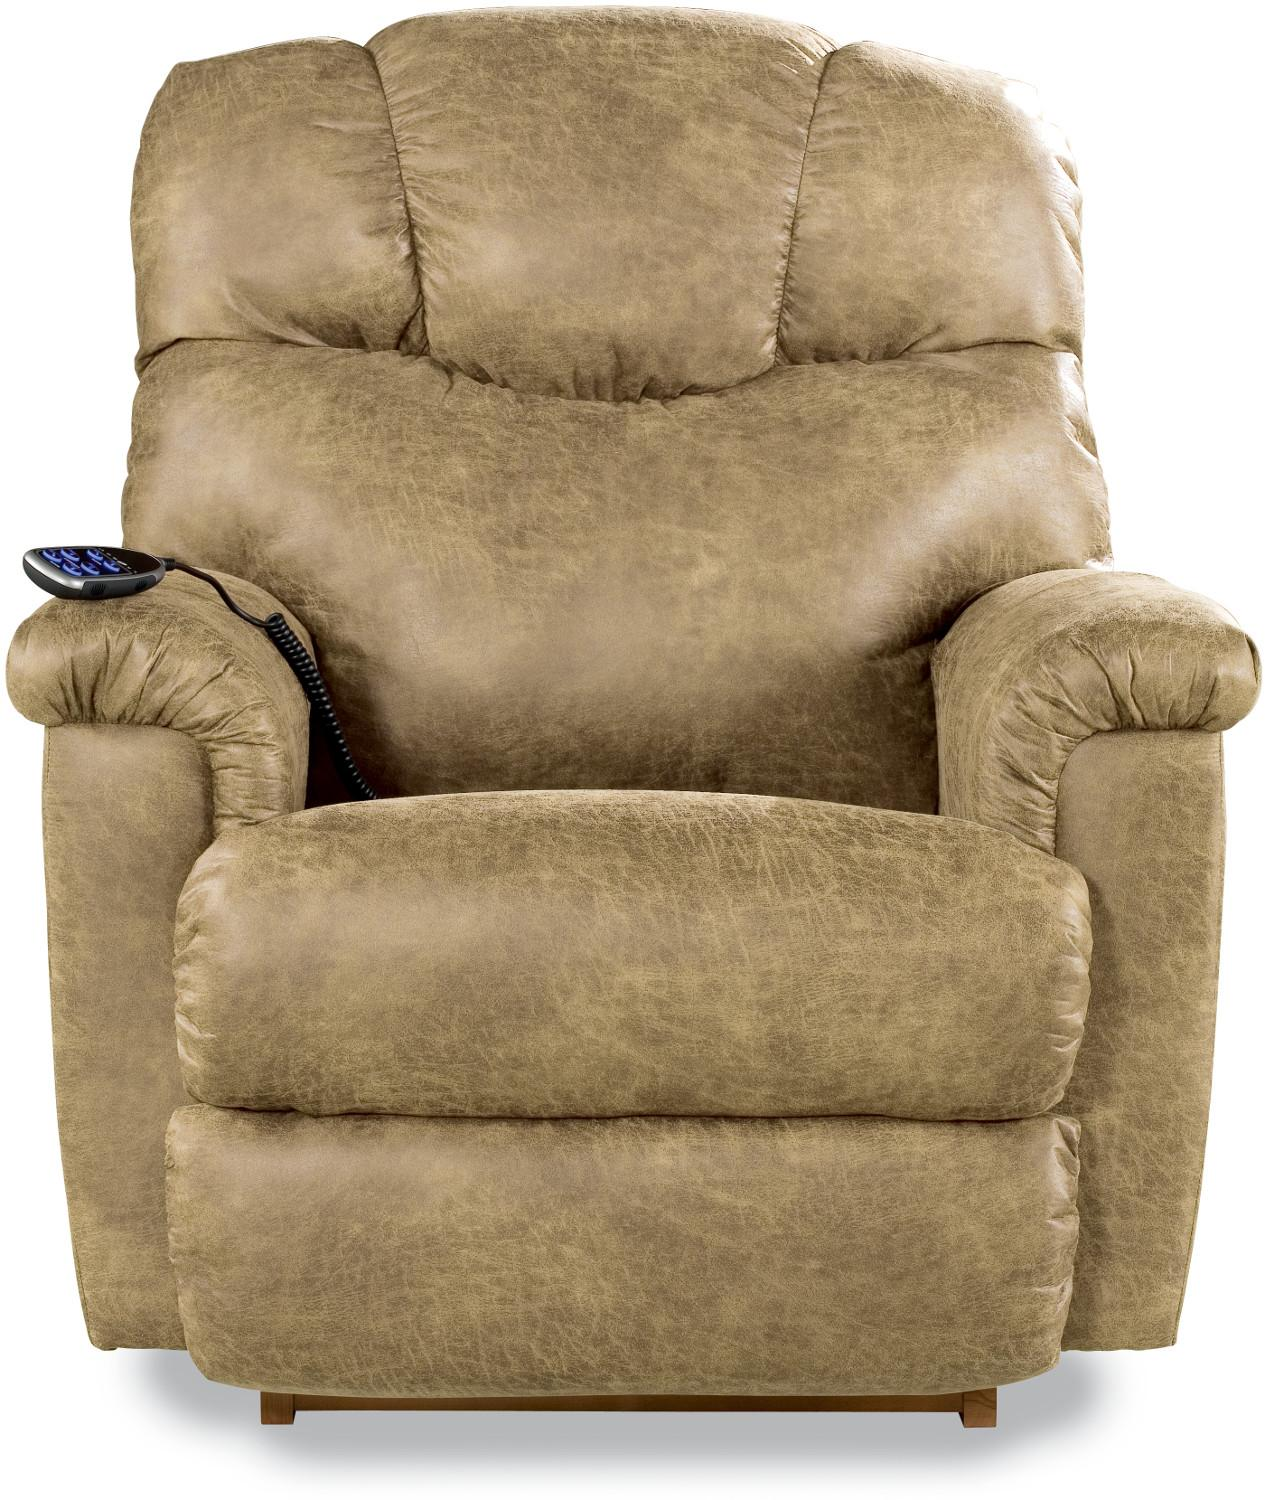 Lancer Power Rocking Recliner by La-Z-Boy at VanDrie Home Furnishings